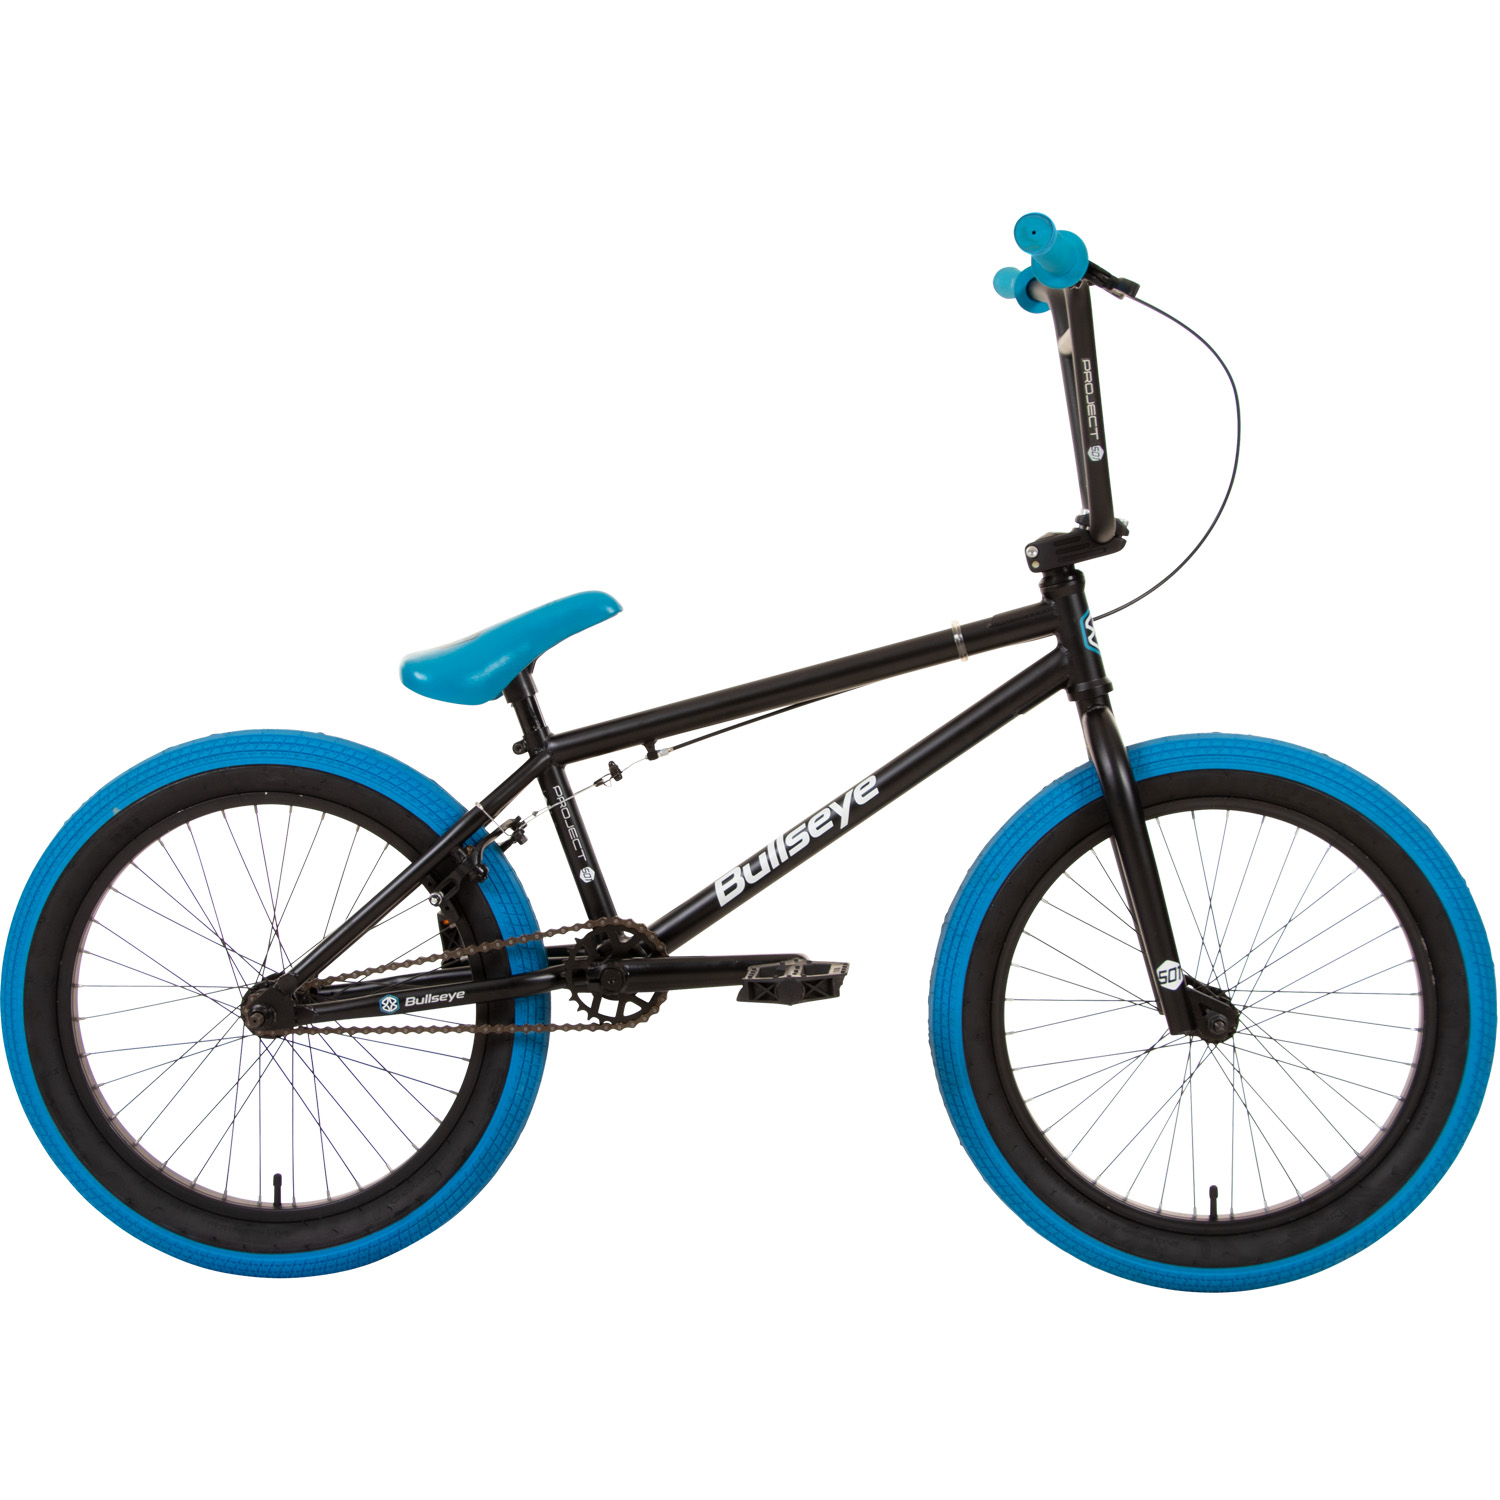 bmx 20 zoll bike 3 farben freestyle rad bullseye fahrrad. Black Bedroom Furniture Sets. Home Design Ideas